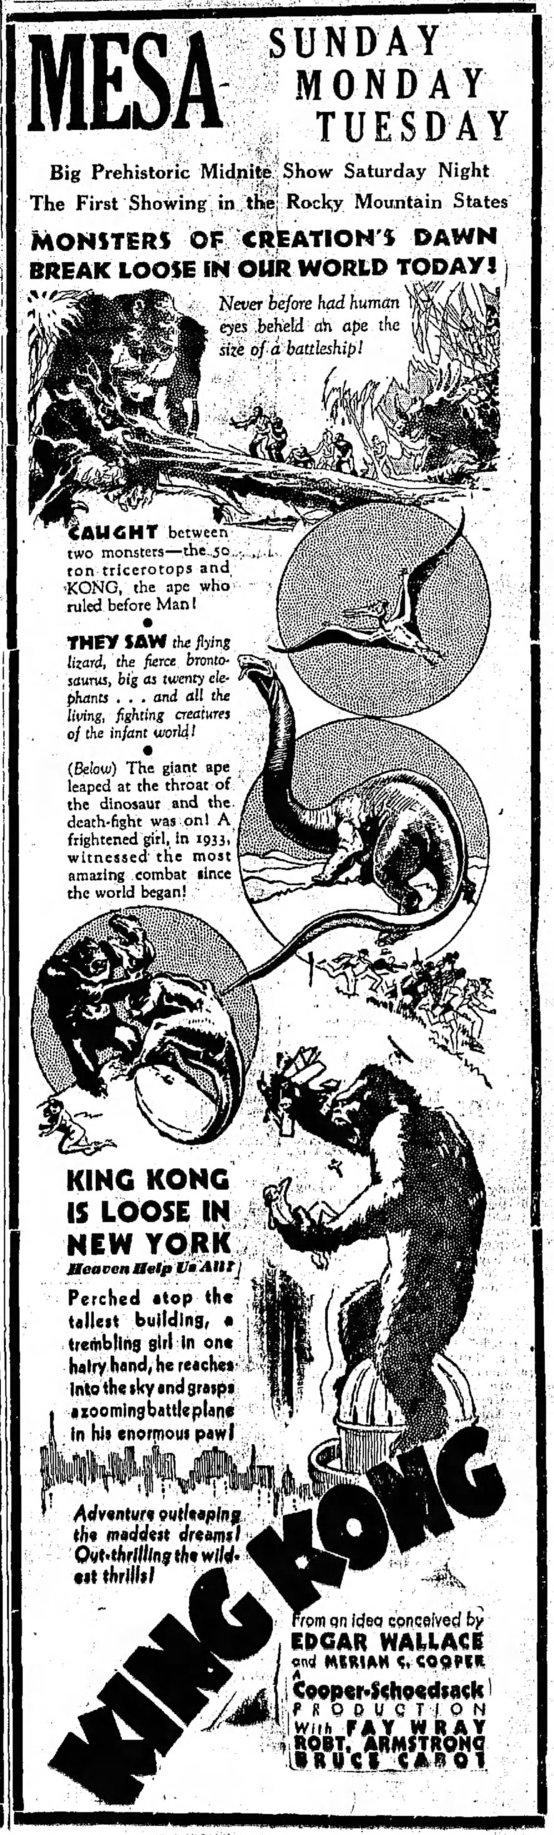 King Kong 1933 newspaper ad